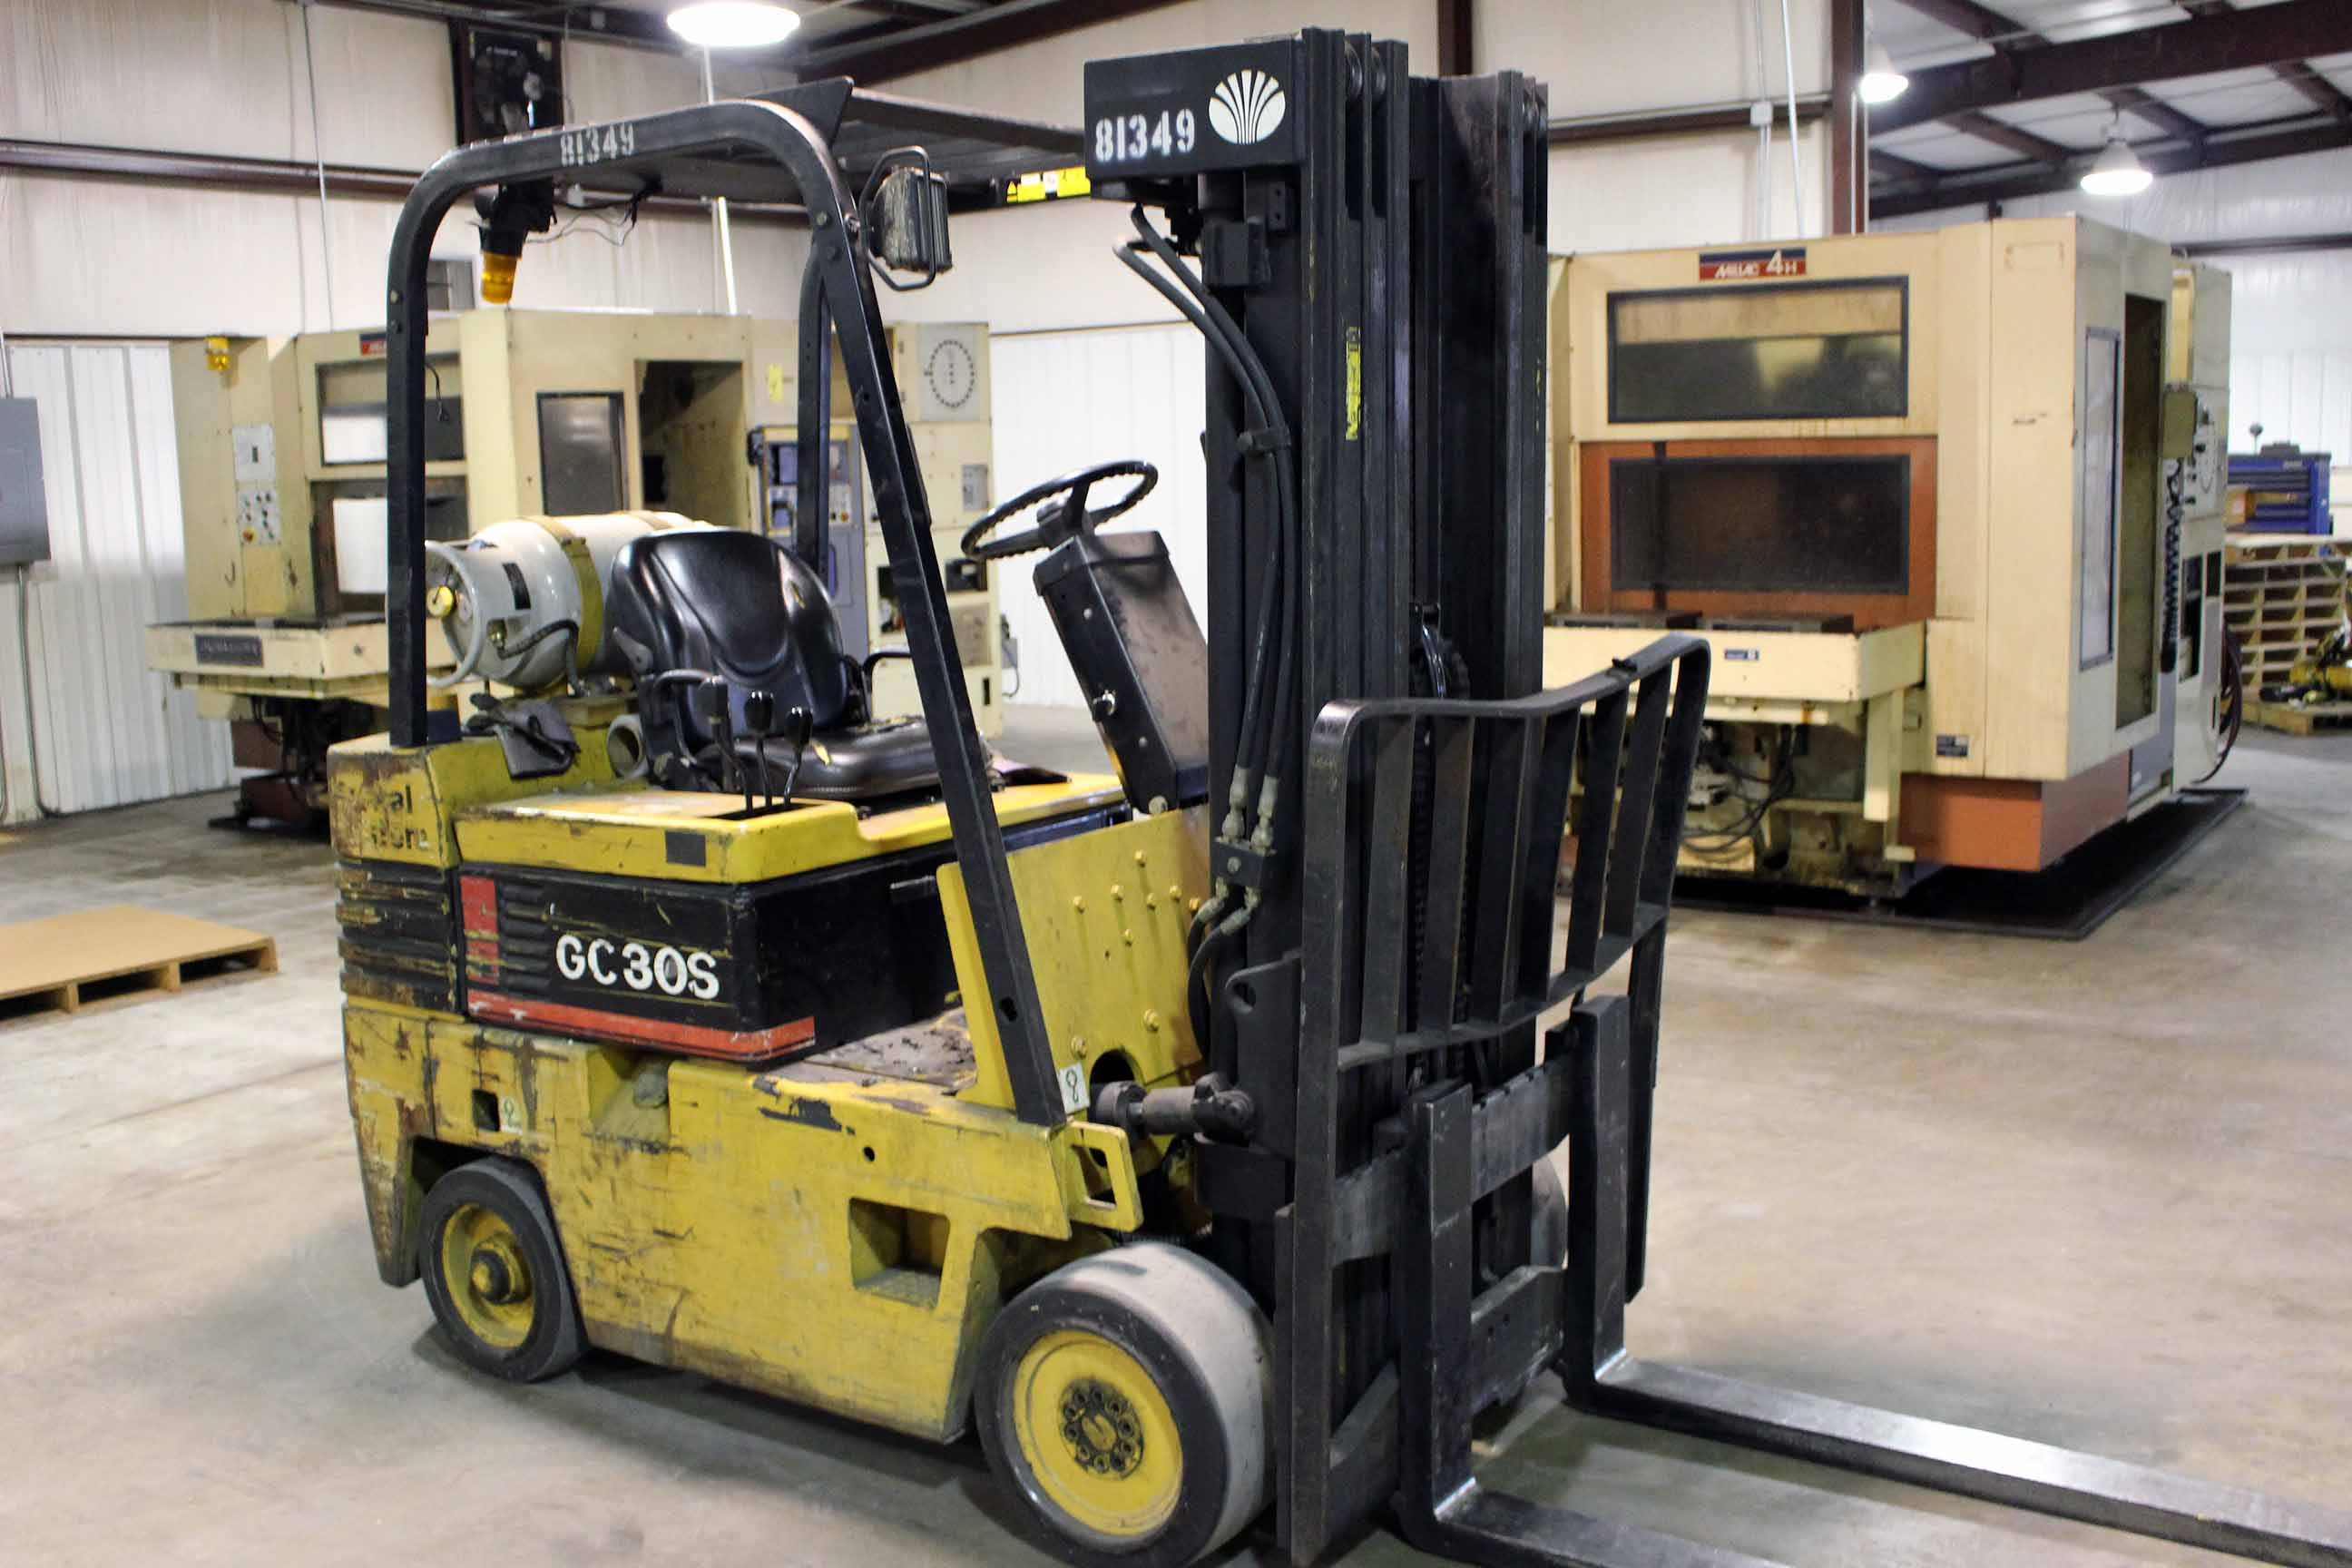 "Lot 19 - FORKLIFT, DAEWOO 6,000 LB. CAP. MDL. GC30S-2, LP gas pwrd., 3-stage mast, 173"" lift ht., 4' forks,"